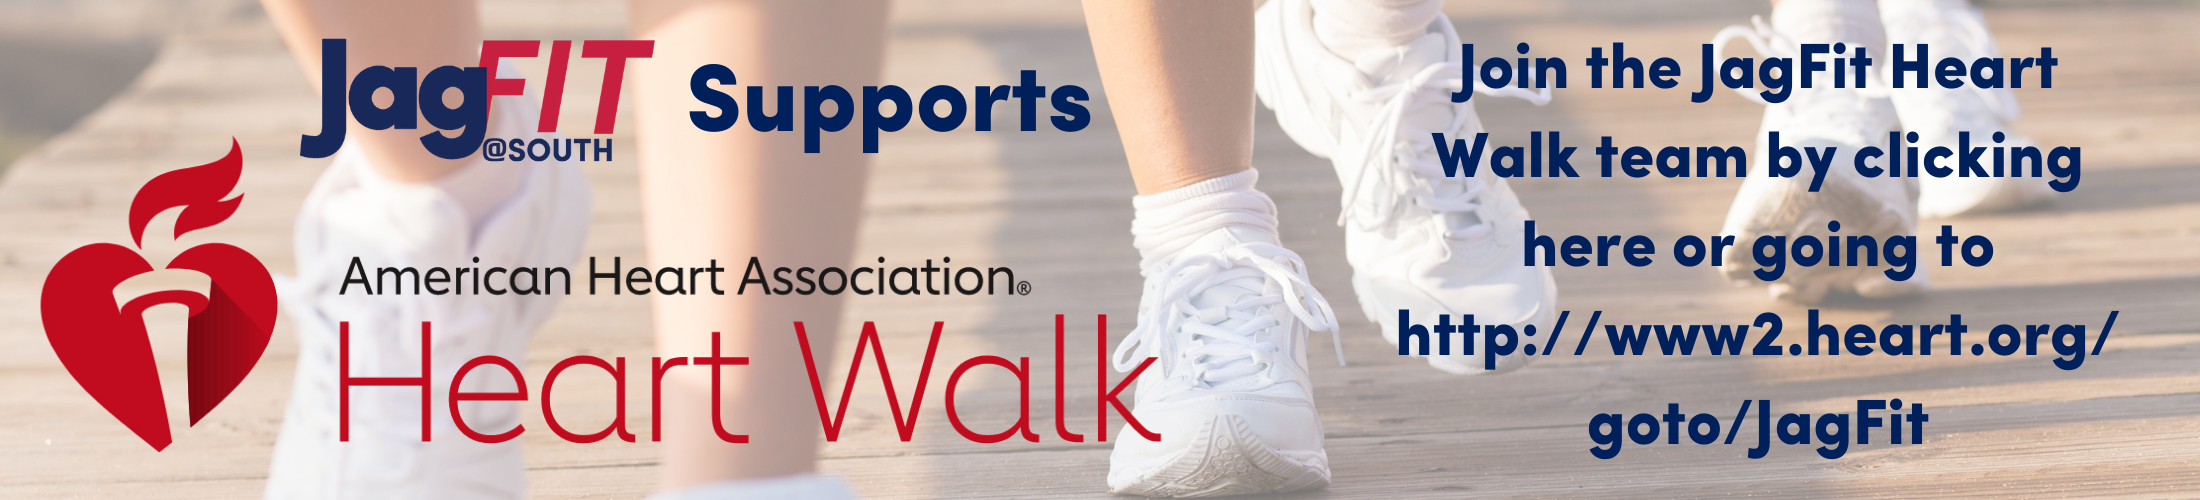 Join the JagFit Heart Walk team by clicking on this image.